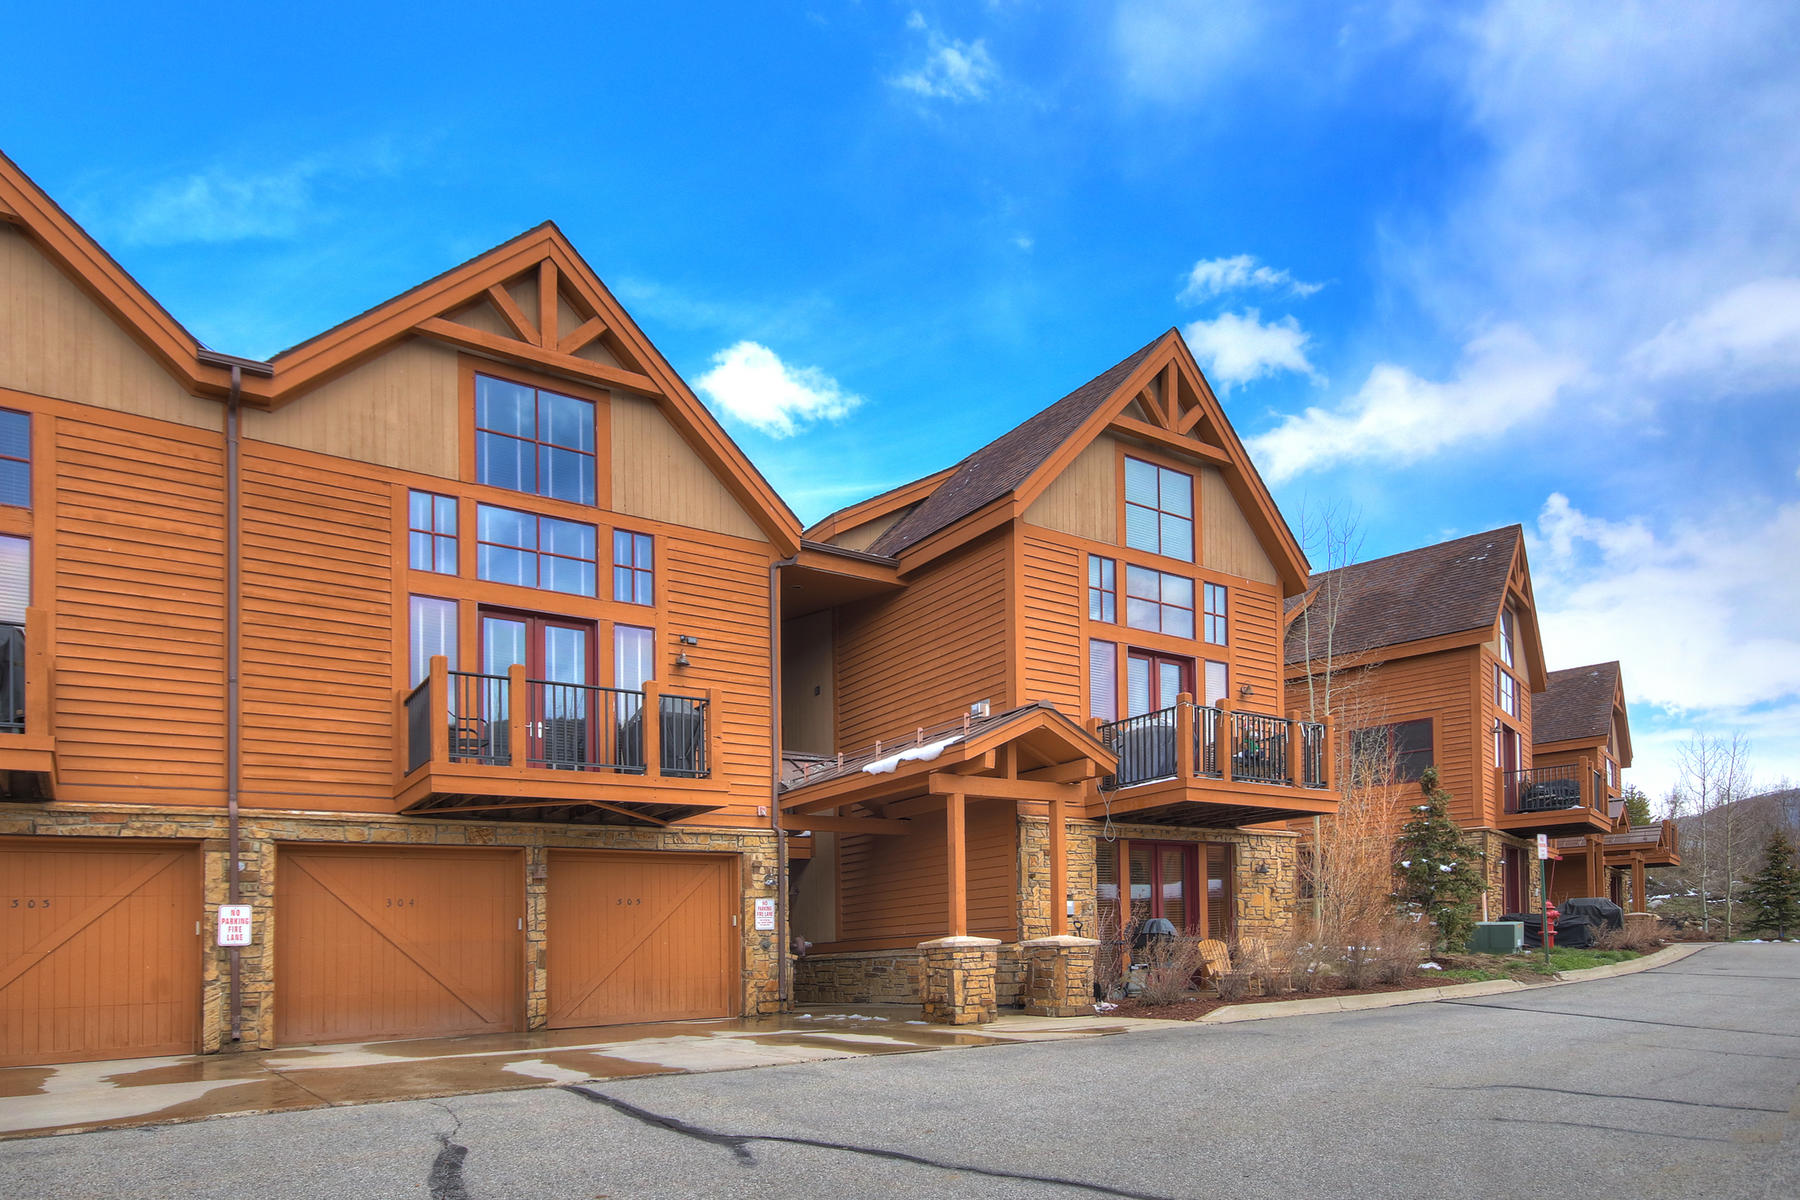 Condominiums for Sale at Antler's Gulch 71 Antler's Gultch Road #304 Keystone, Colorado 80435 United States